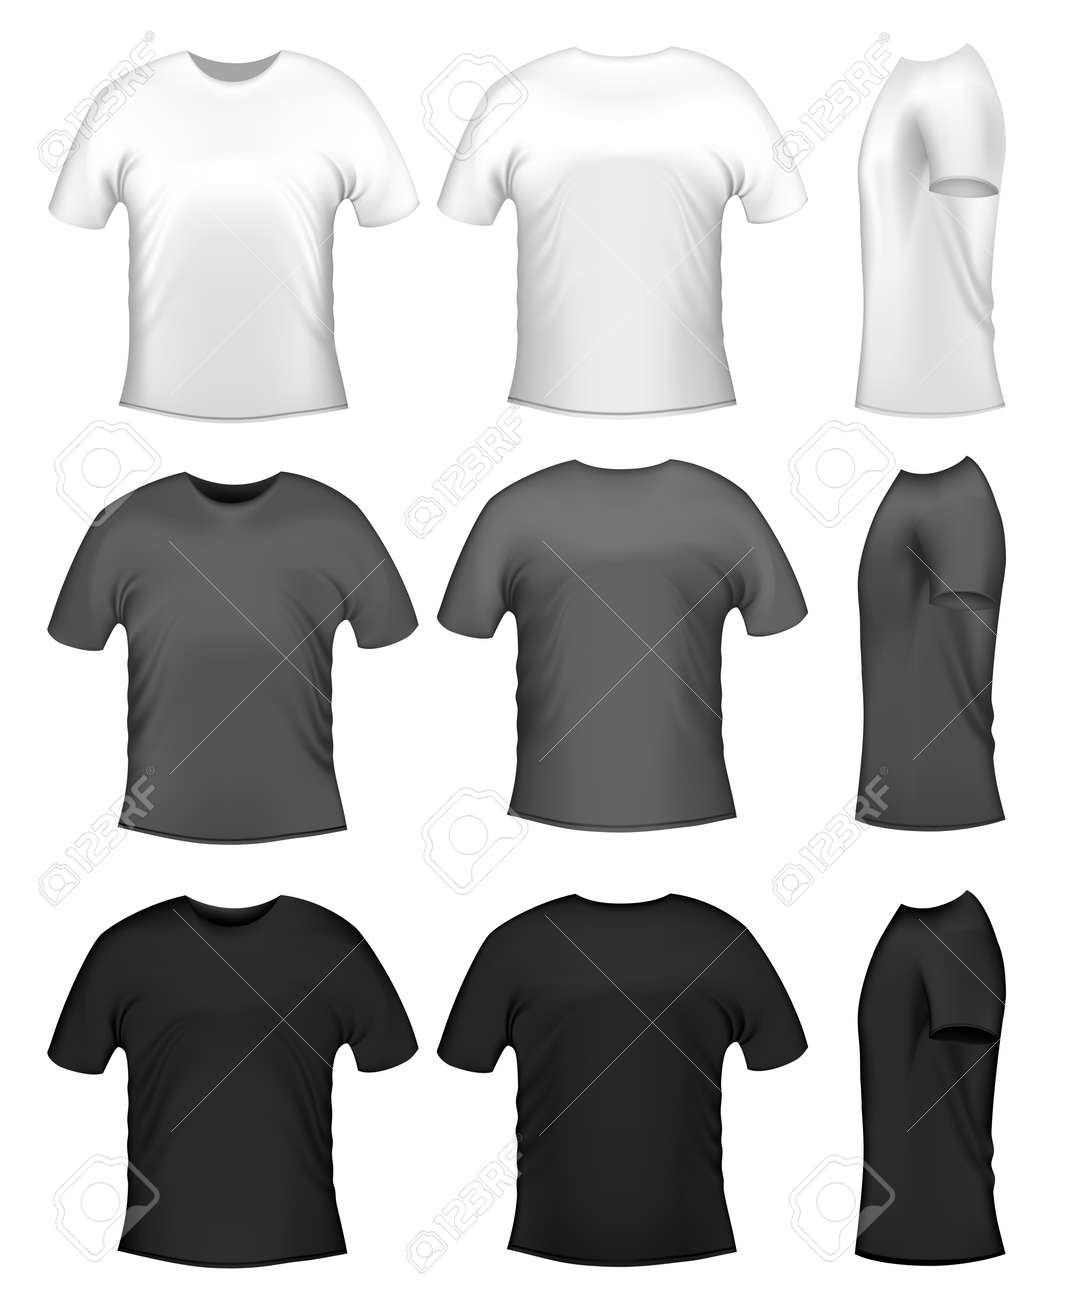 Black t shirt vector front and back - Black T Shirt Vector Front And Back 24